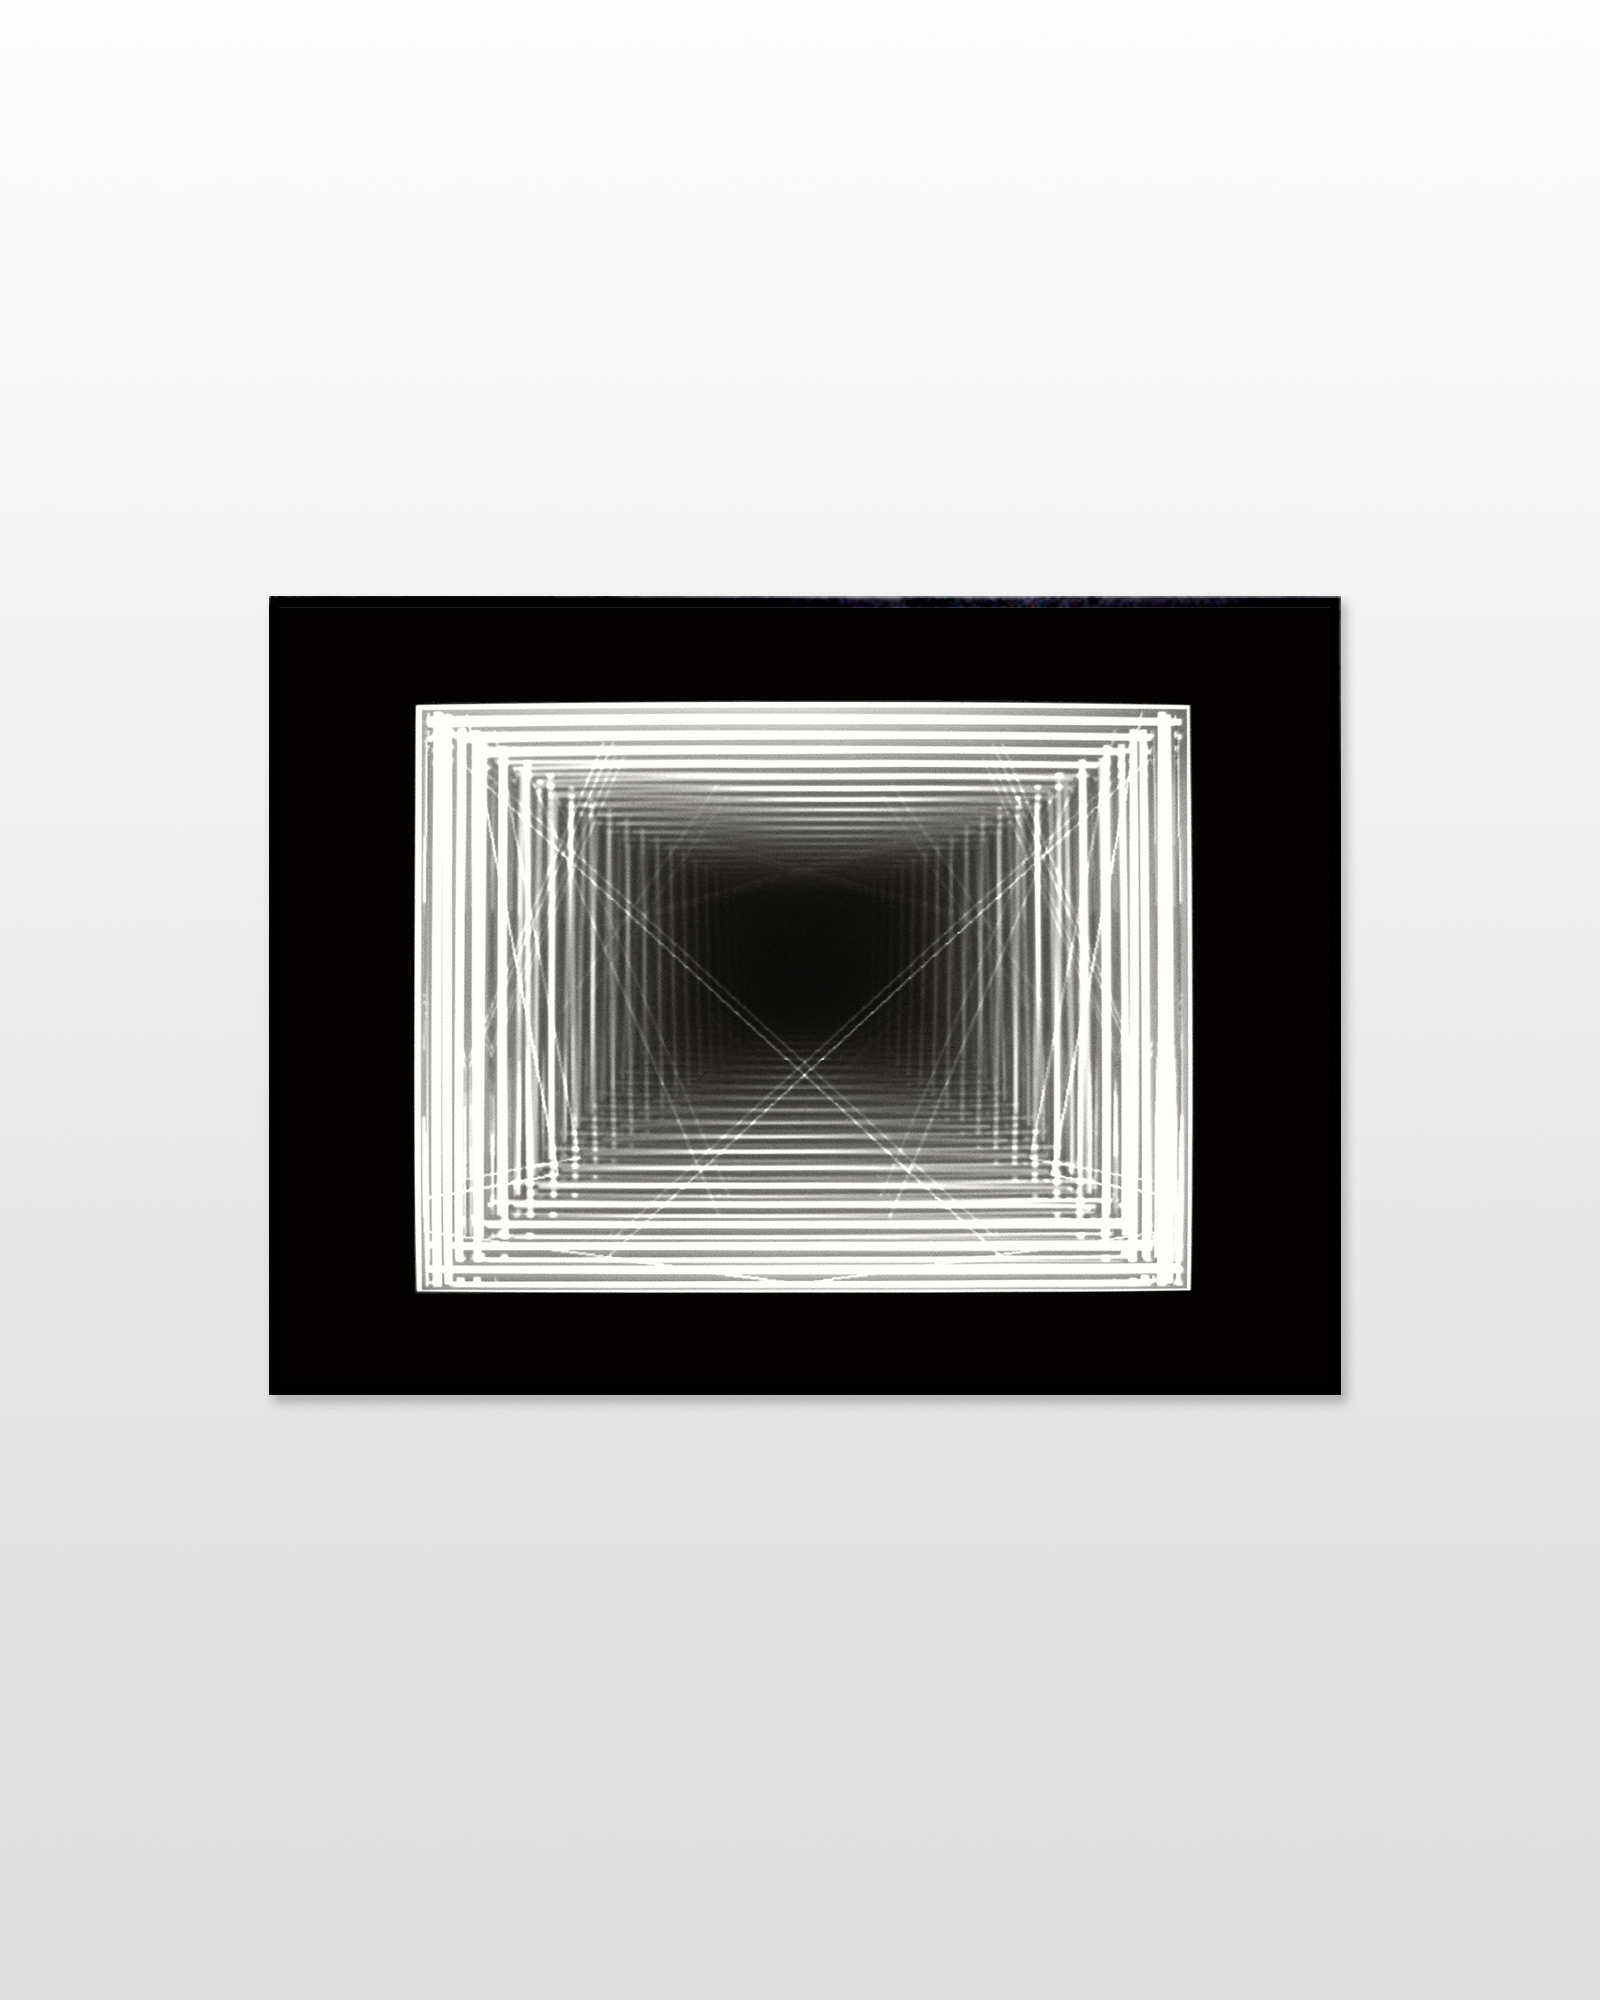 posters-prints, photographs, giclee-print, new-media, abstract, geometric, minimalistic, monochrome, movement, patterns, science, technology, black, grey, white, ink, paper, abstract-forms, beautiful, black-and-white, computer, cubes, cubism, danish, dark, decorative, design, digital, horizontal, interior, interior-design, male, modern, nordic, pixel, scandinavien, Buy original high quality art. Paintings, drawings, limited edition prints & posters by talented artists.